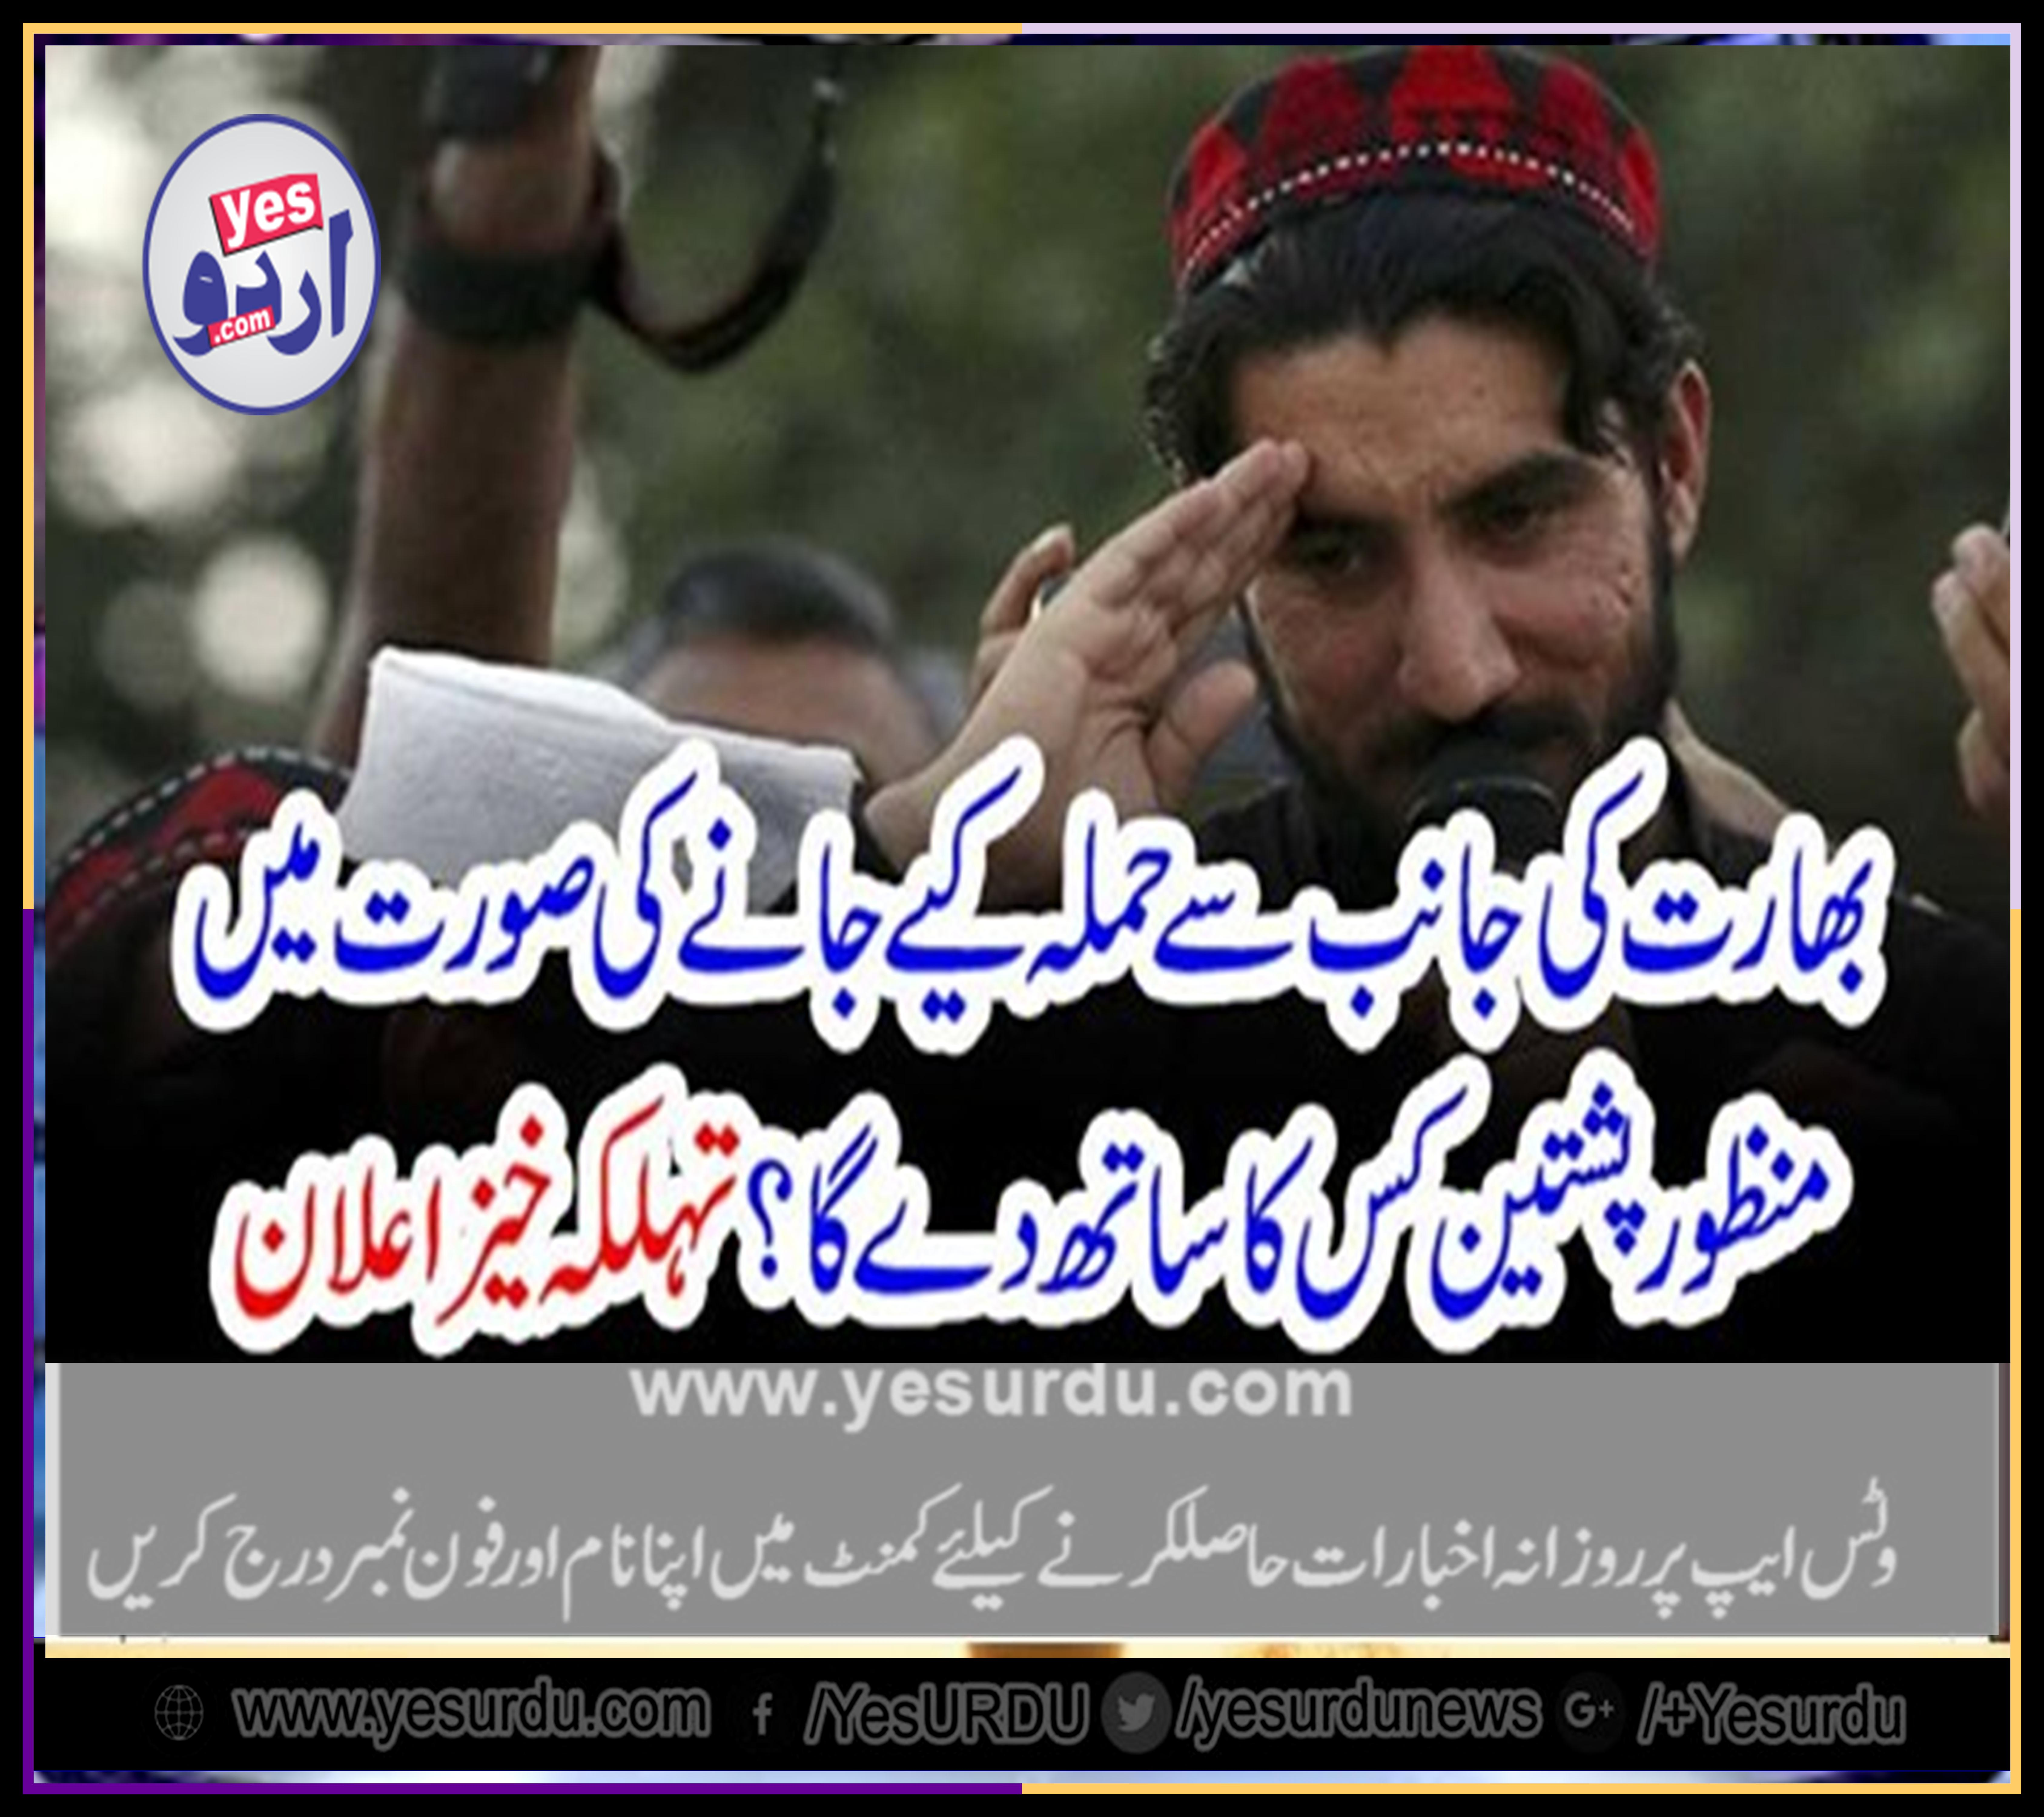 IF, BHARAT, ATTACKS, WHICH, COUNTRY, MANZOOR PASHTEEN, WILL, FAVOR, A, BIG, NEWS, HIT, THE, GLOBE